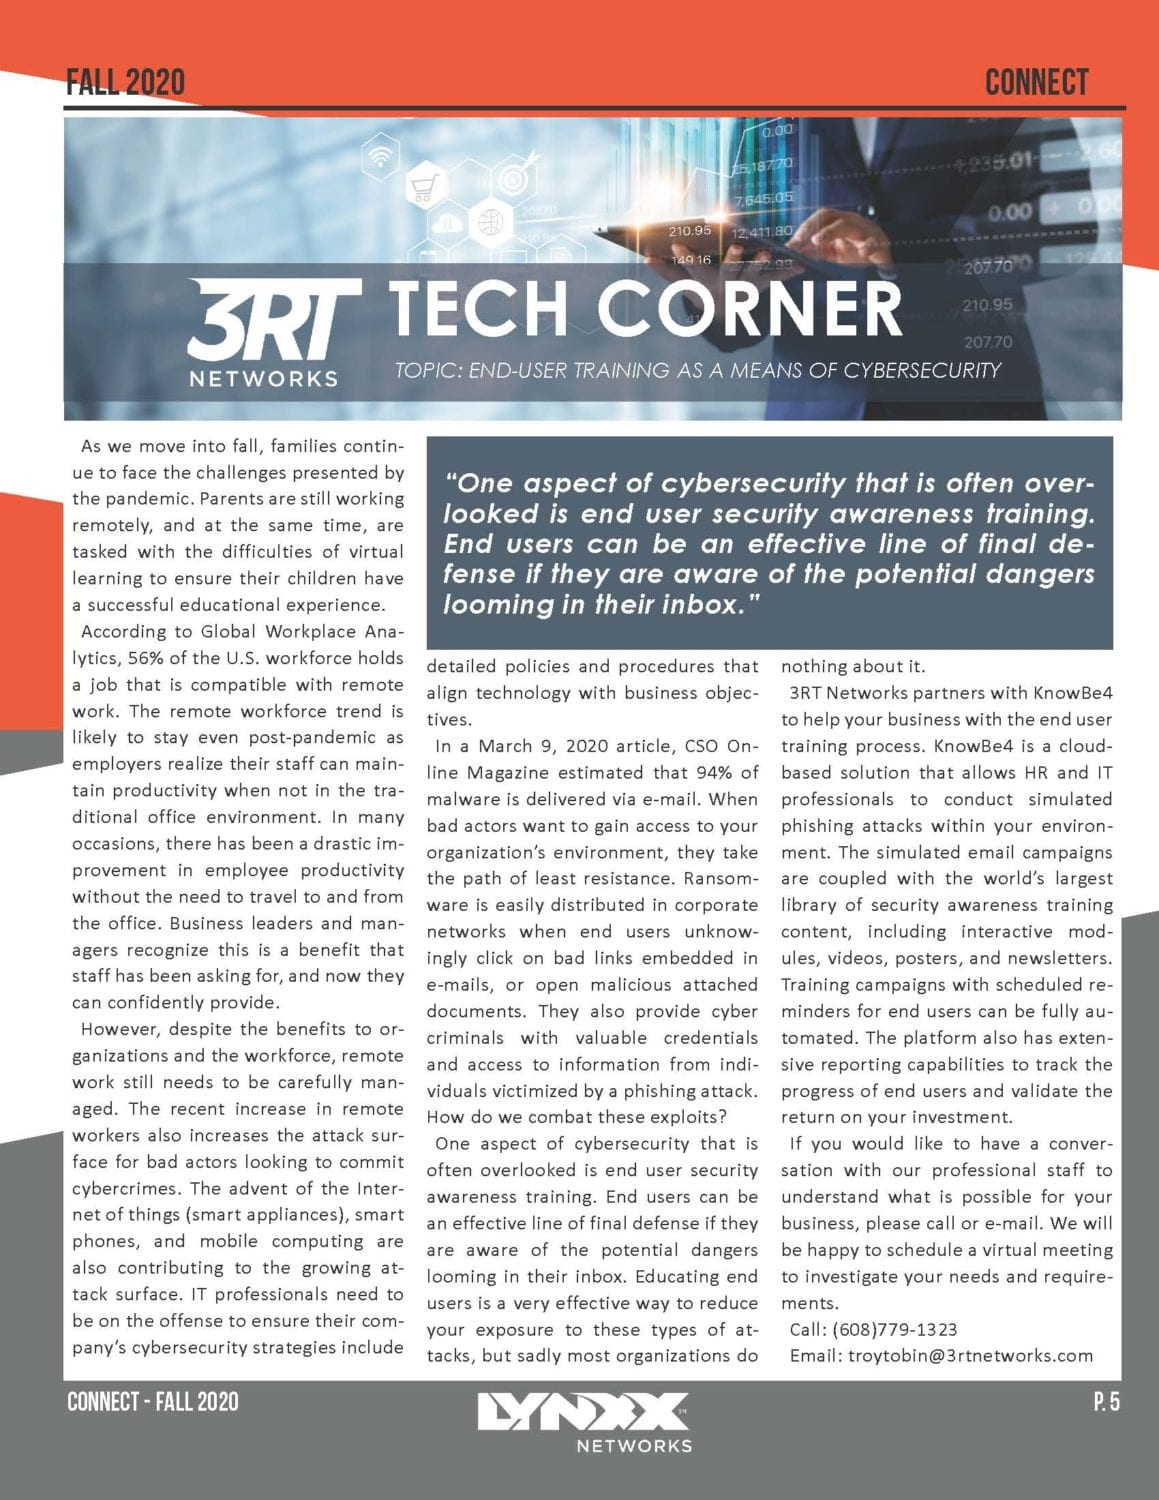 Connect Newsletter Fall 2020 Business P. 5 3RT Tech Corner